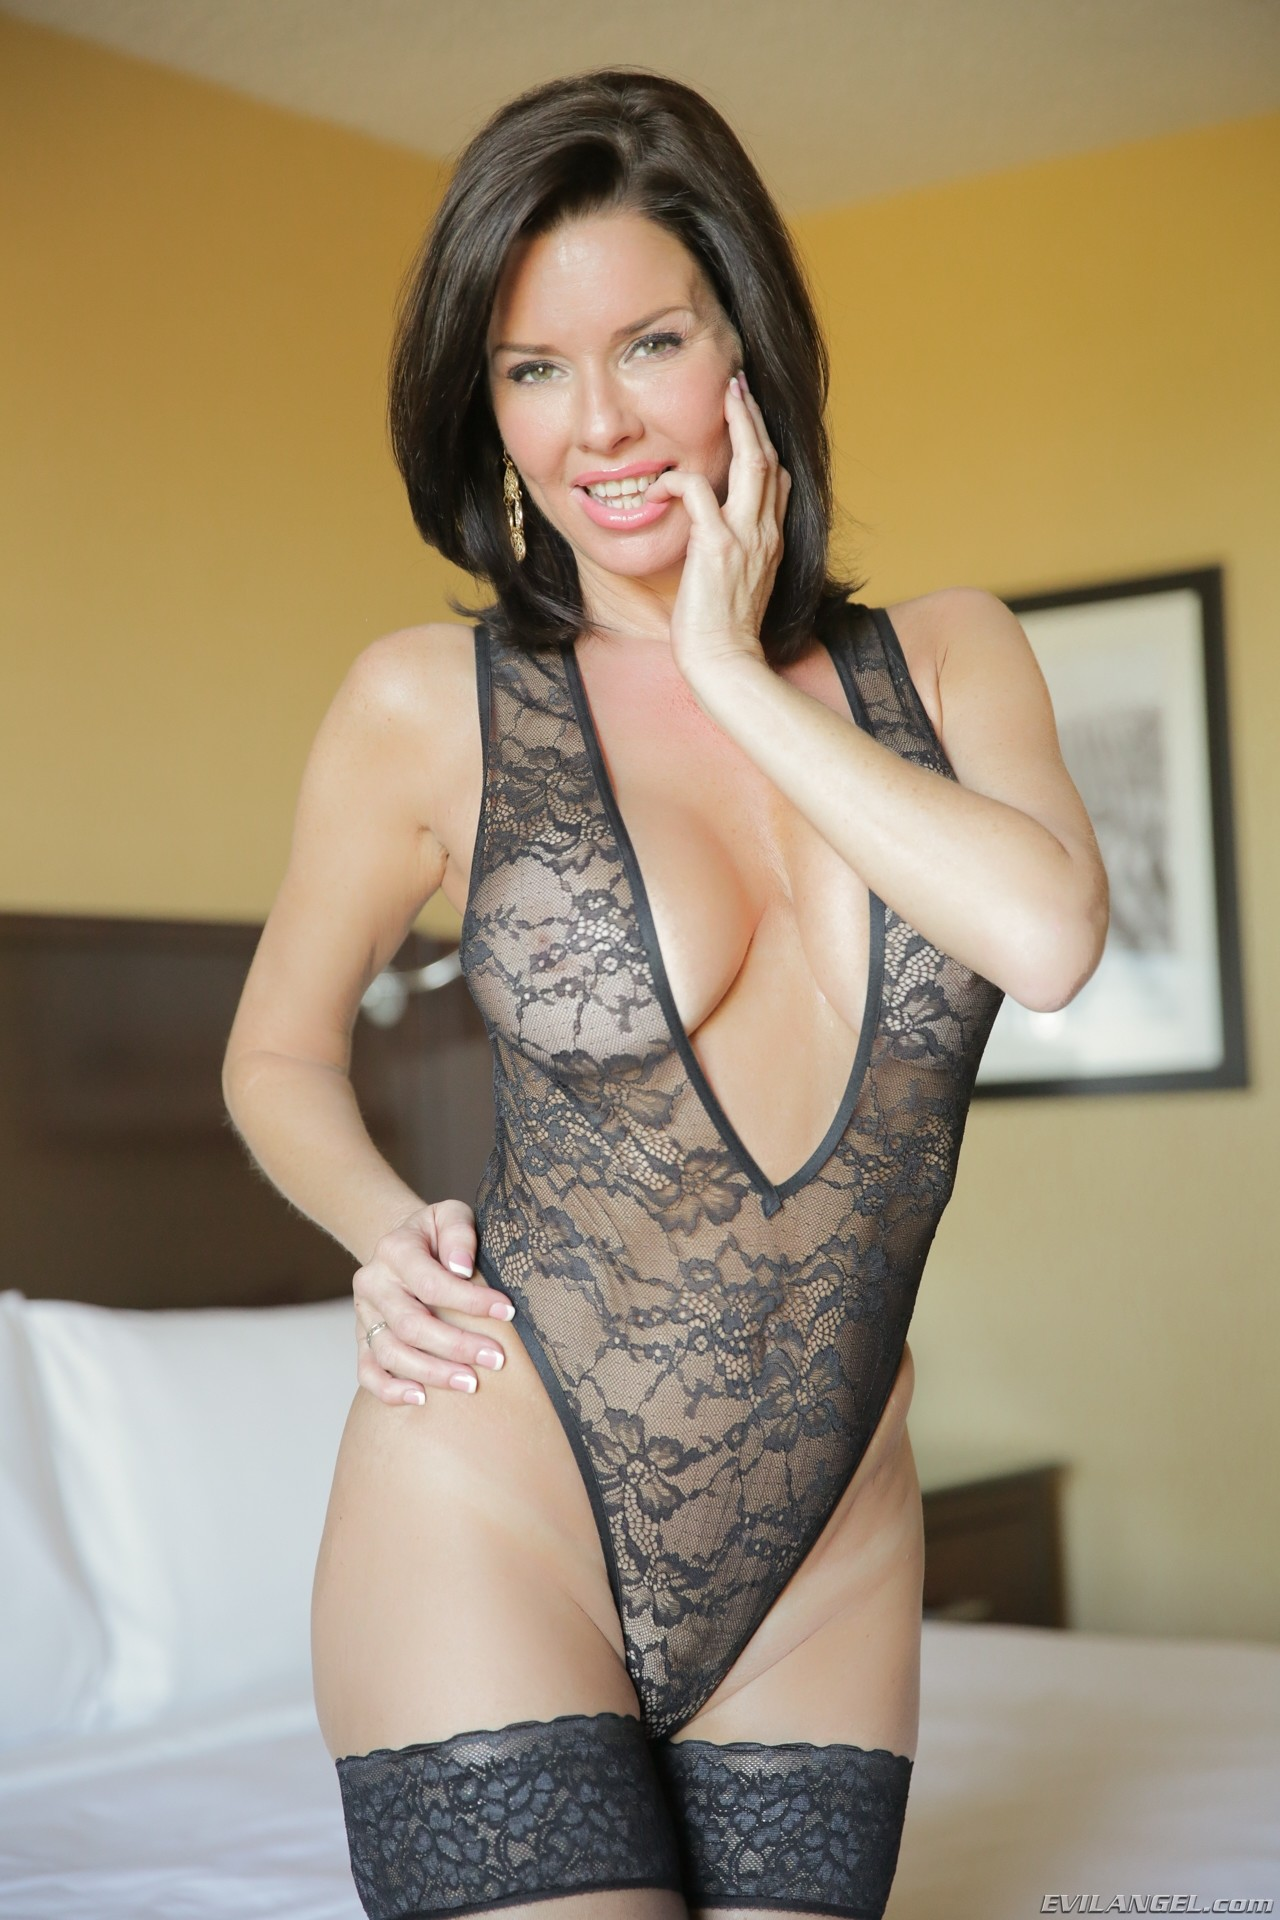 https://b.porngals4.com/media/galleries/1/18/96425-1099104168/veronica-avluv-busty-milf-5715395-3496669014.jpg